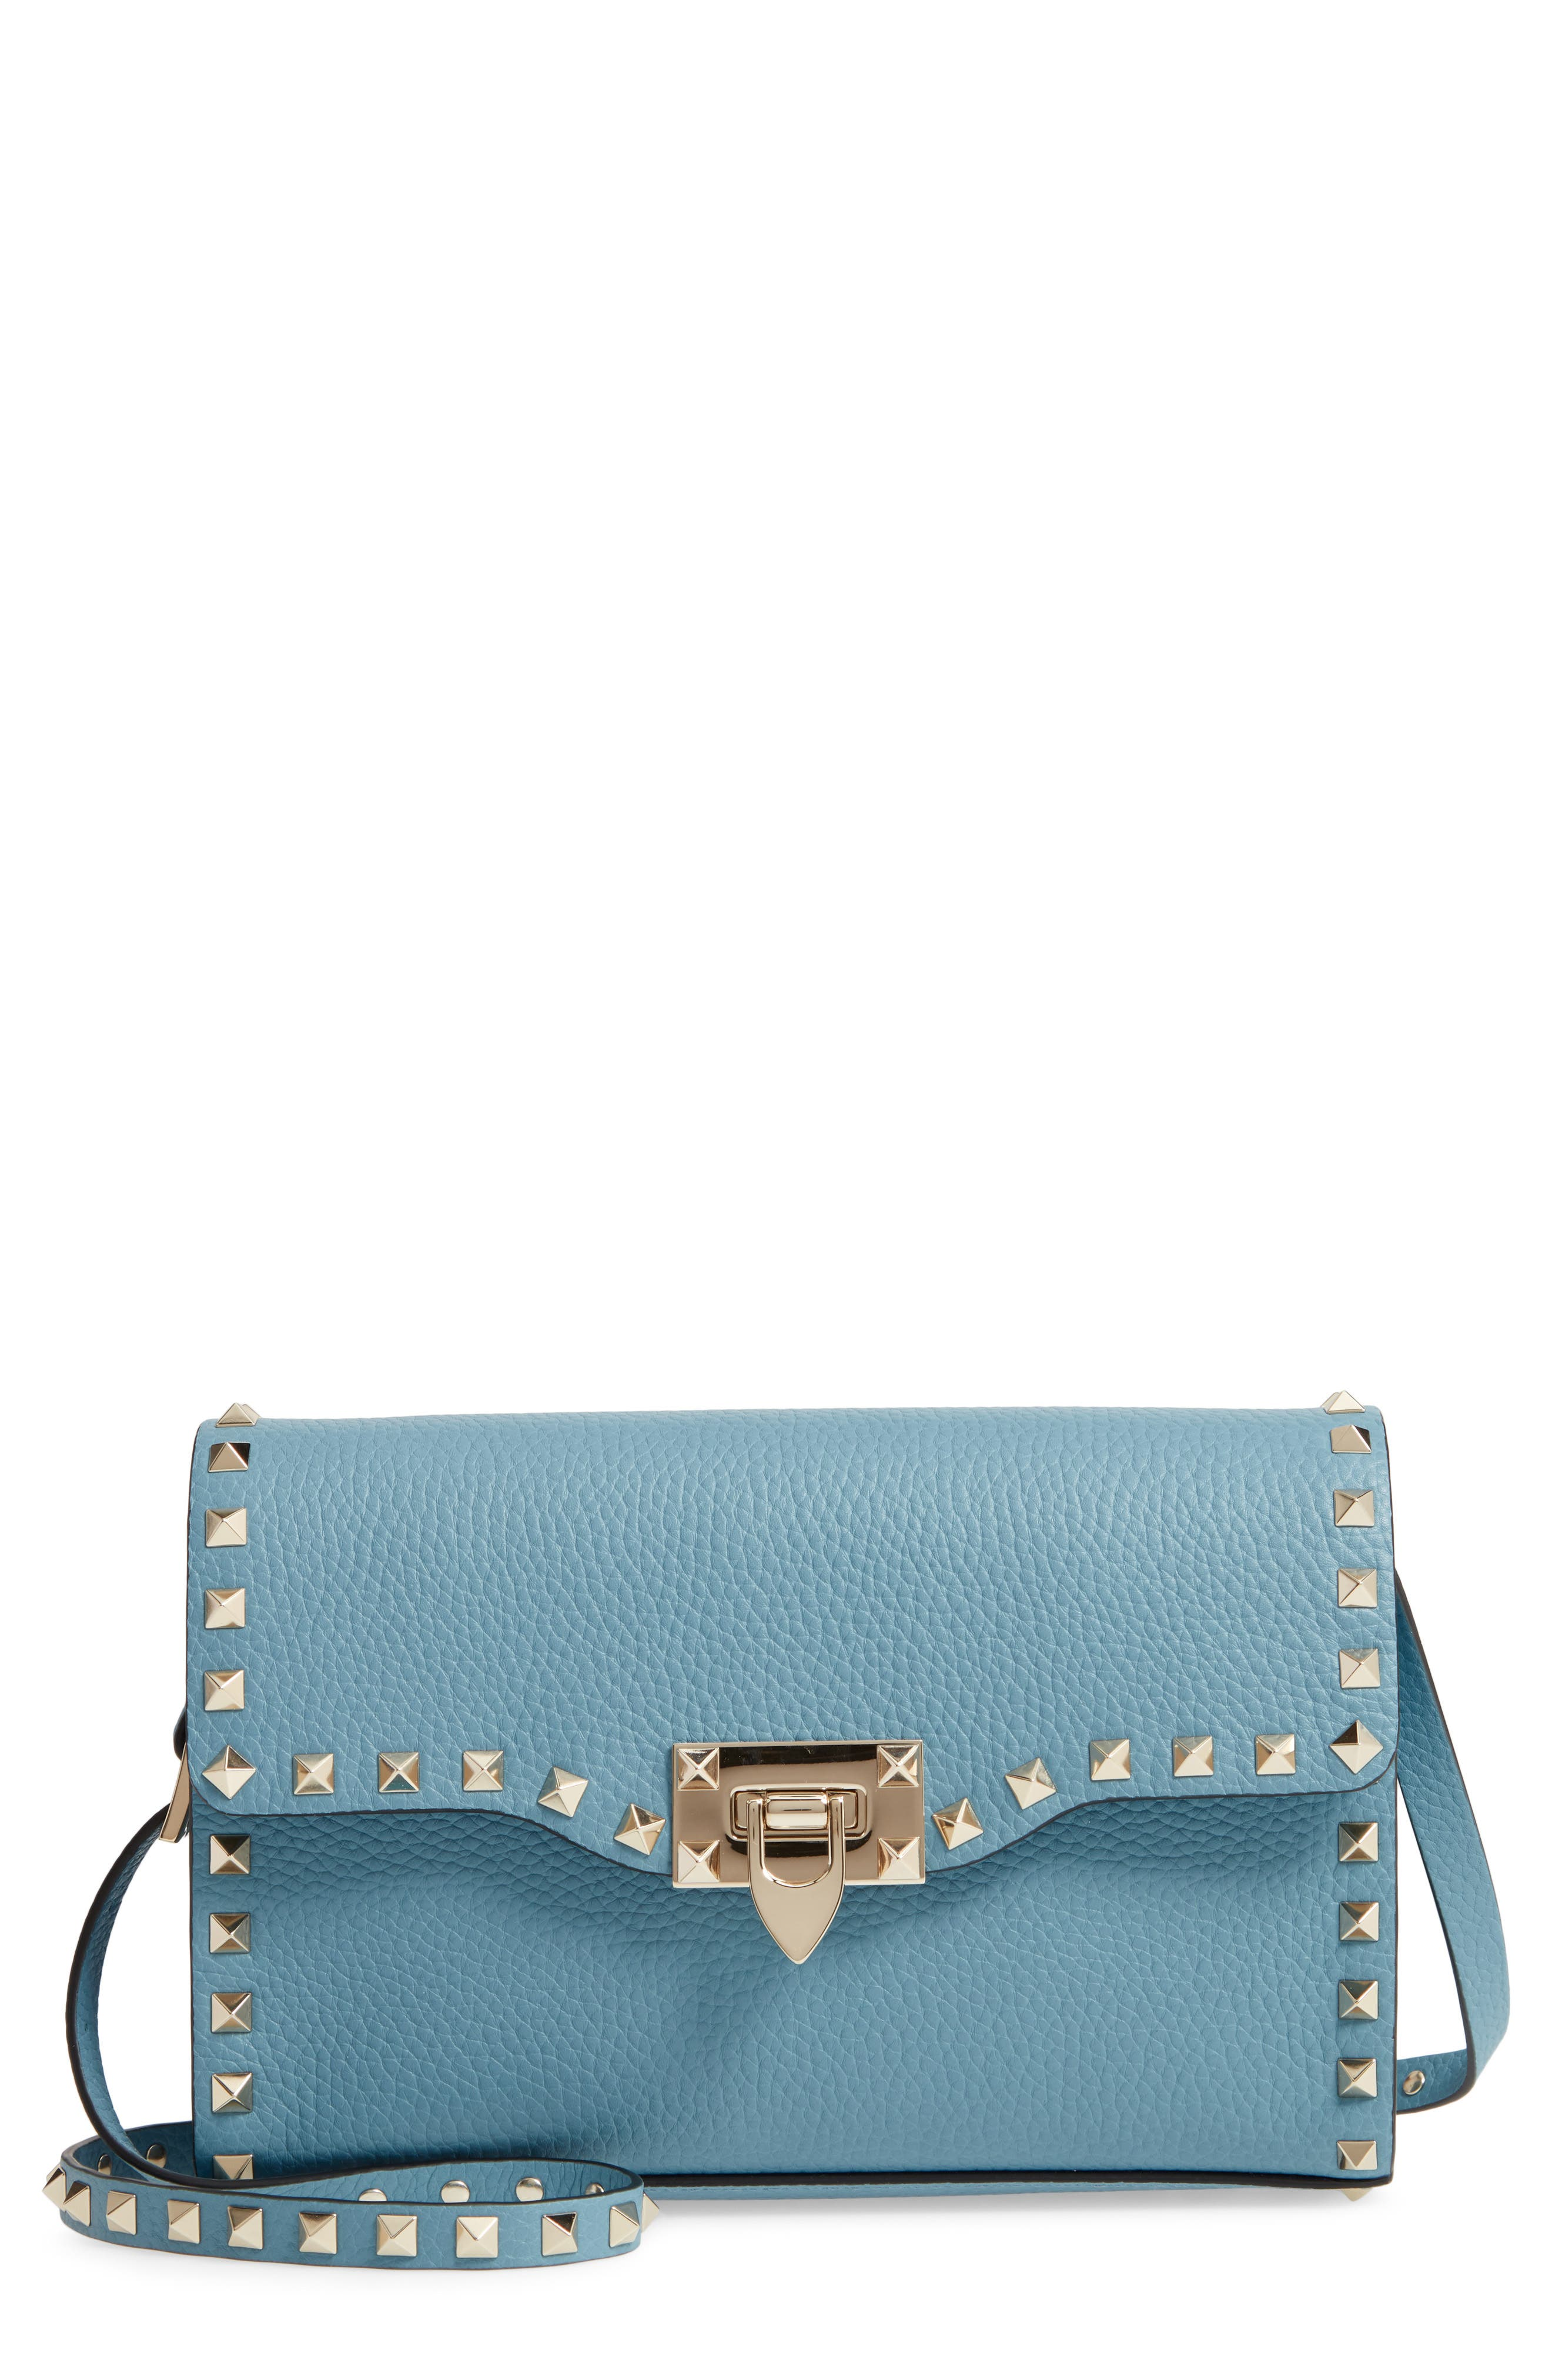 VALENTINO GARAVANI, Medium Rockstud Leather Crossbody Bag, Main thumbnail 1, color, 485